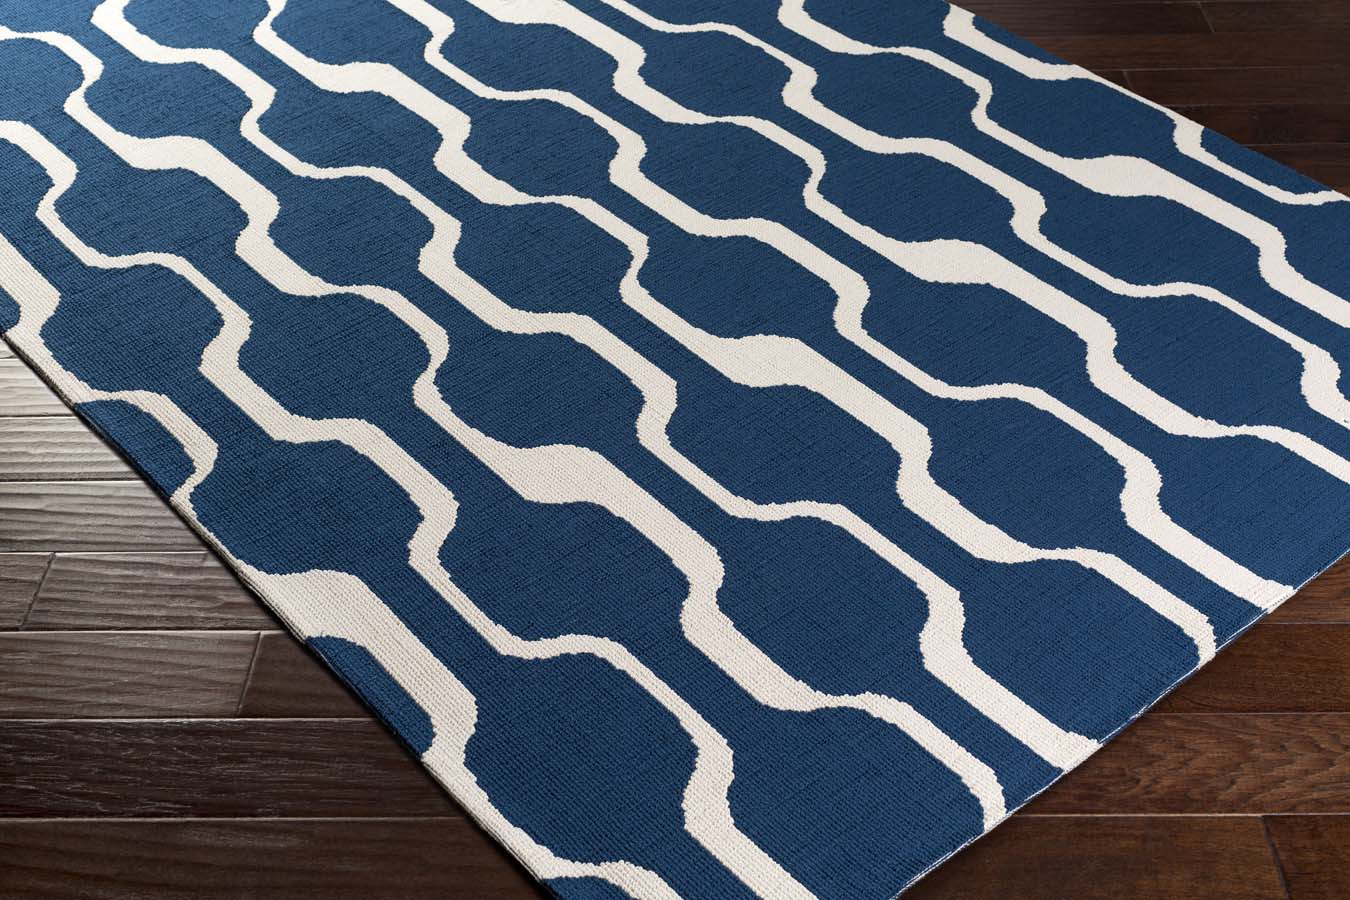 request in medium x navy on with buy stocked of or blue custom land colour sizes very small floors large rug are available for rugs reko go roomshot to ready